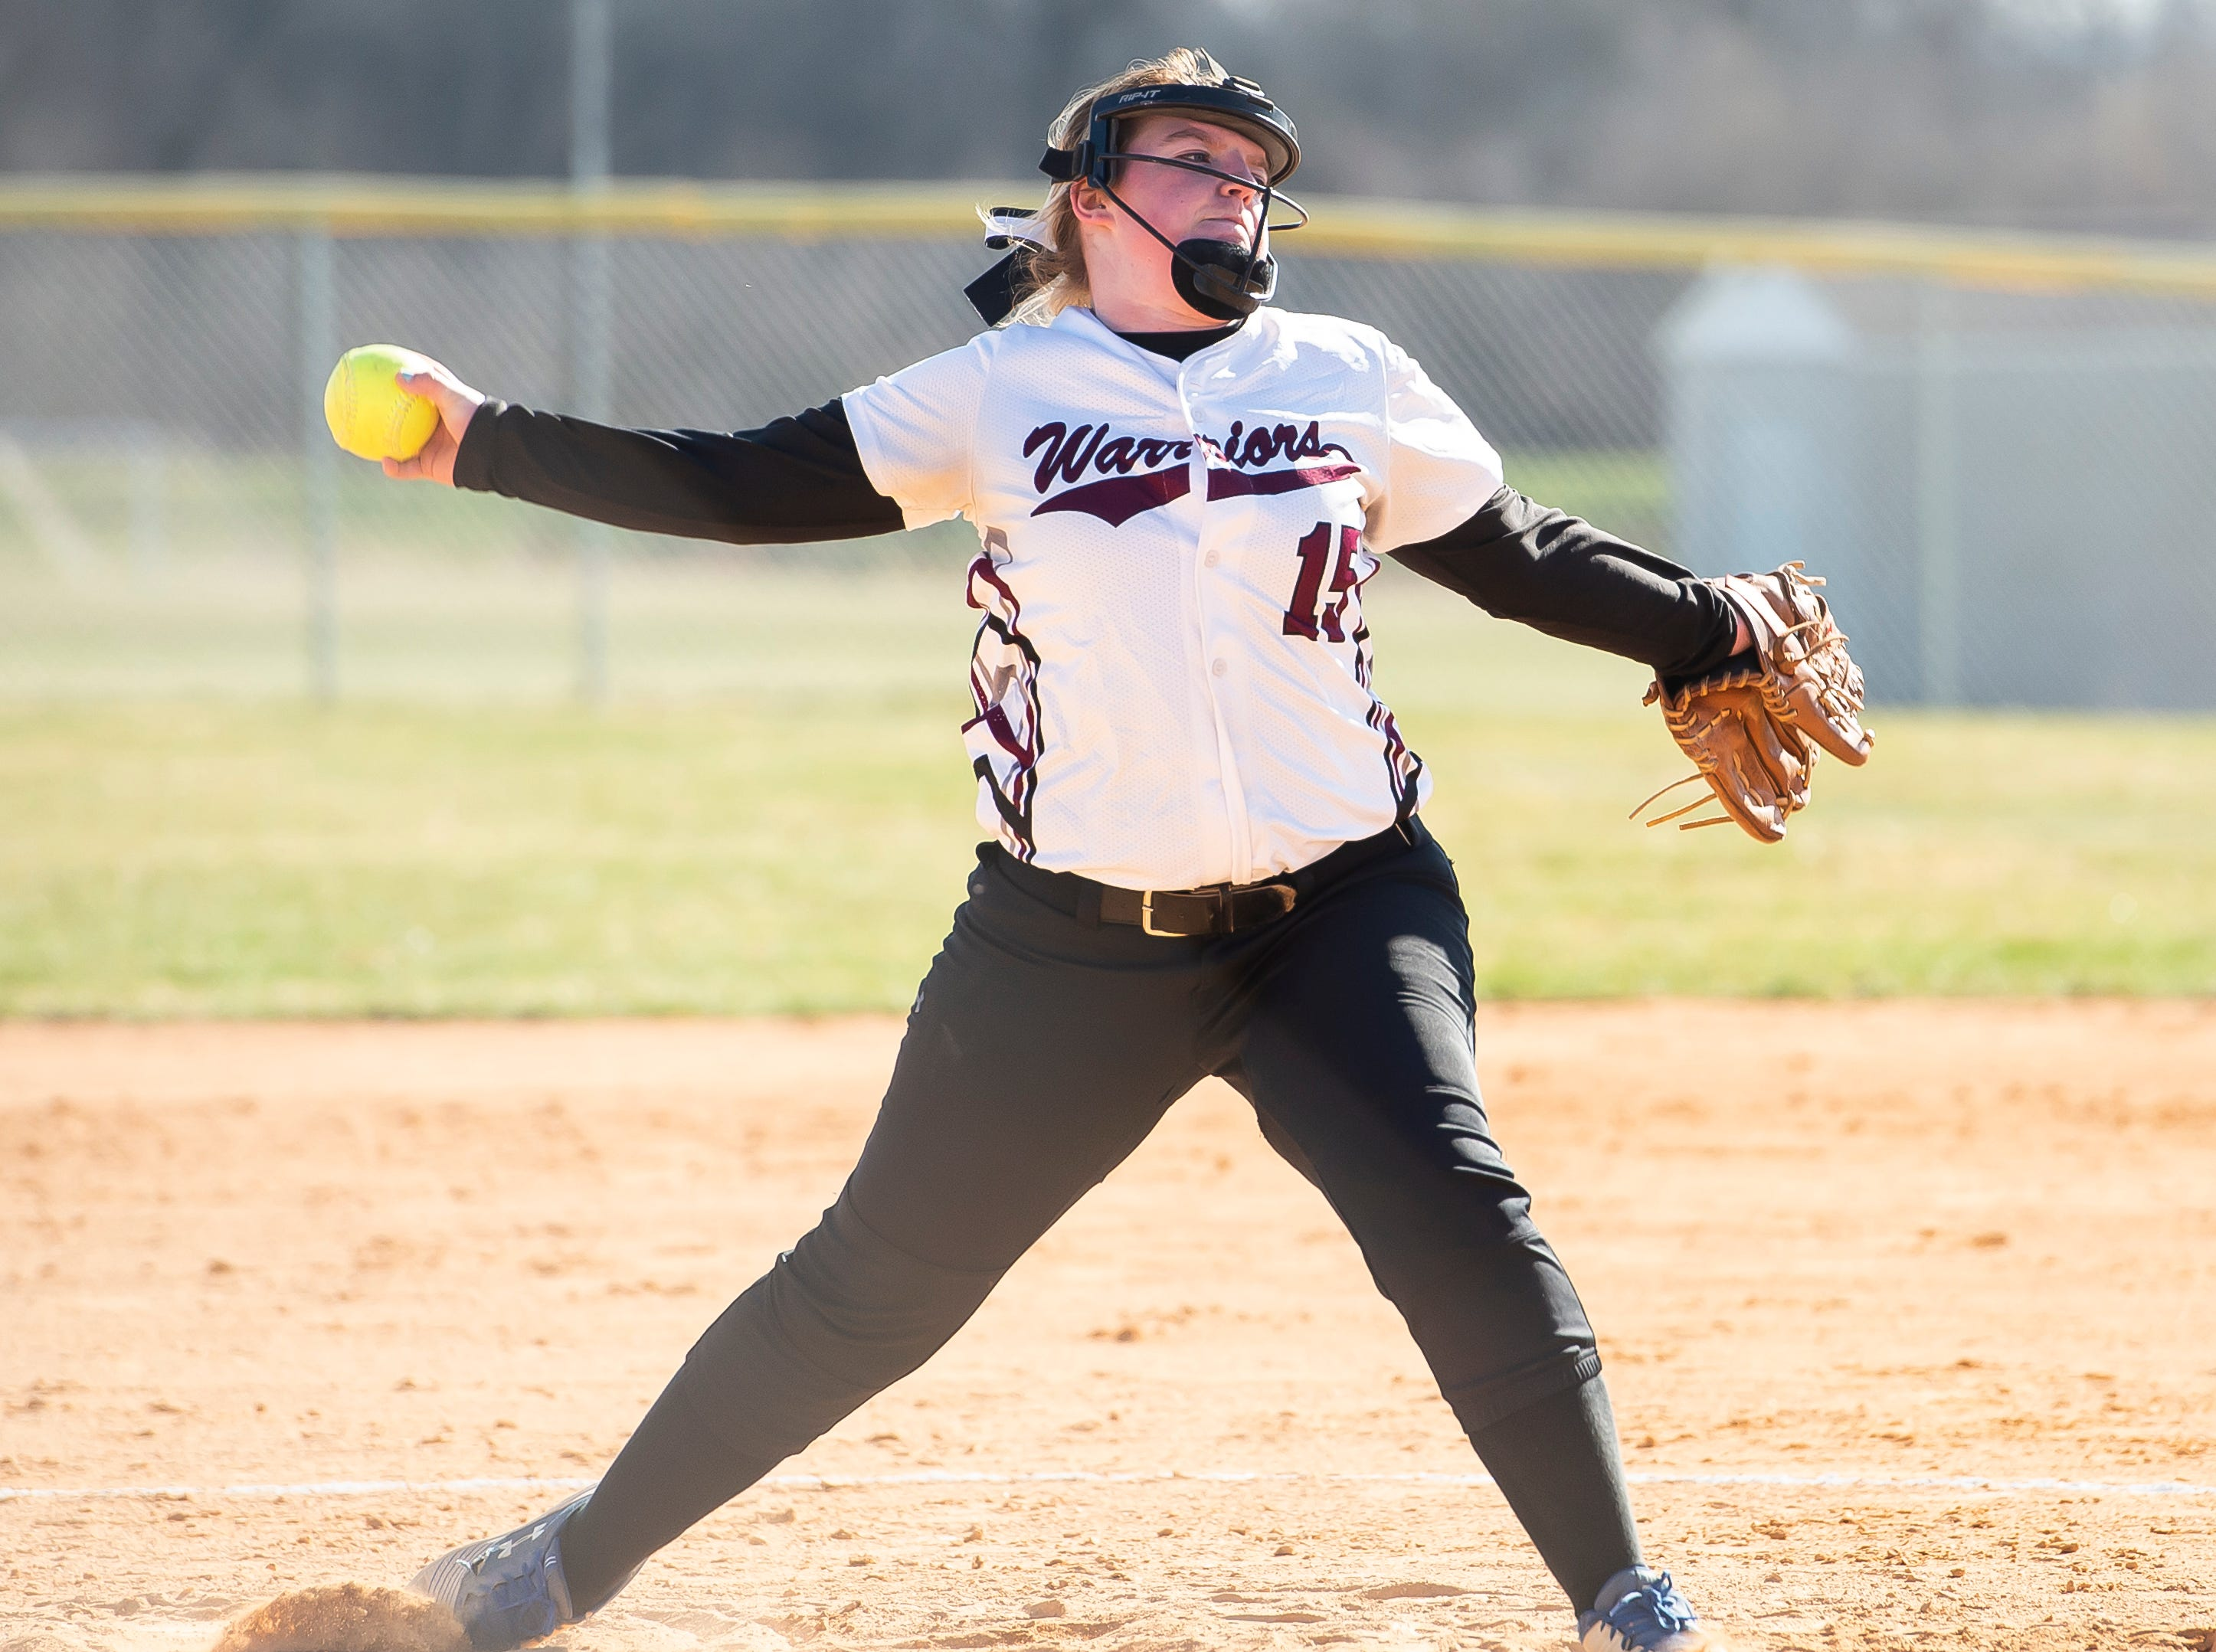 Gettysburg starting pitcher Faith Boone throws to a Littlestown batter during a YAIAA softball game on Monday, April 1, 2019. The Bolts won 10-4.